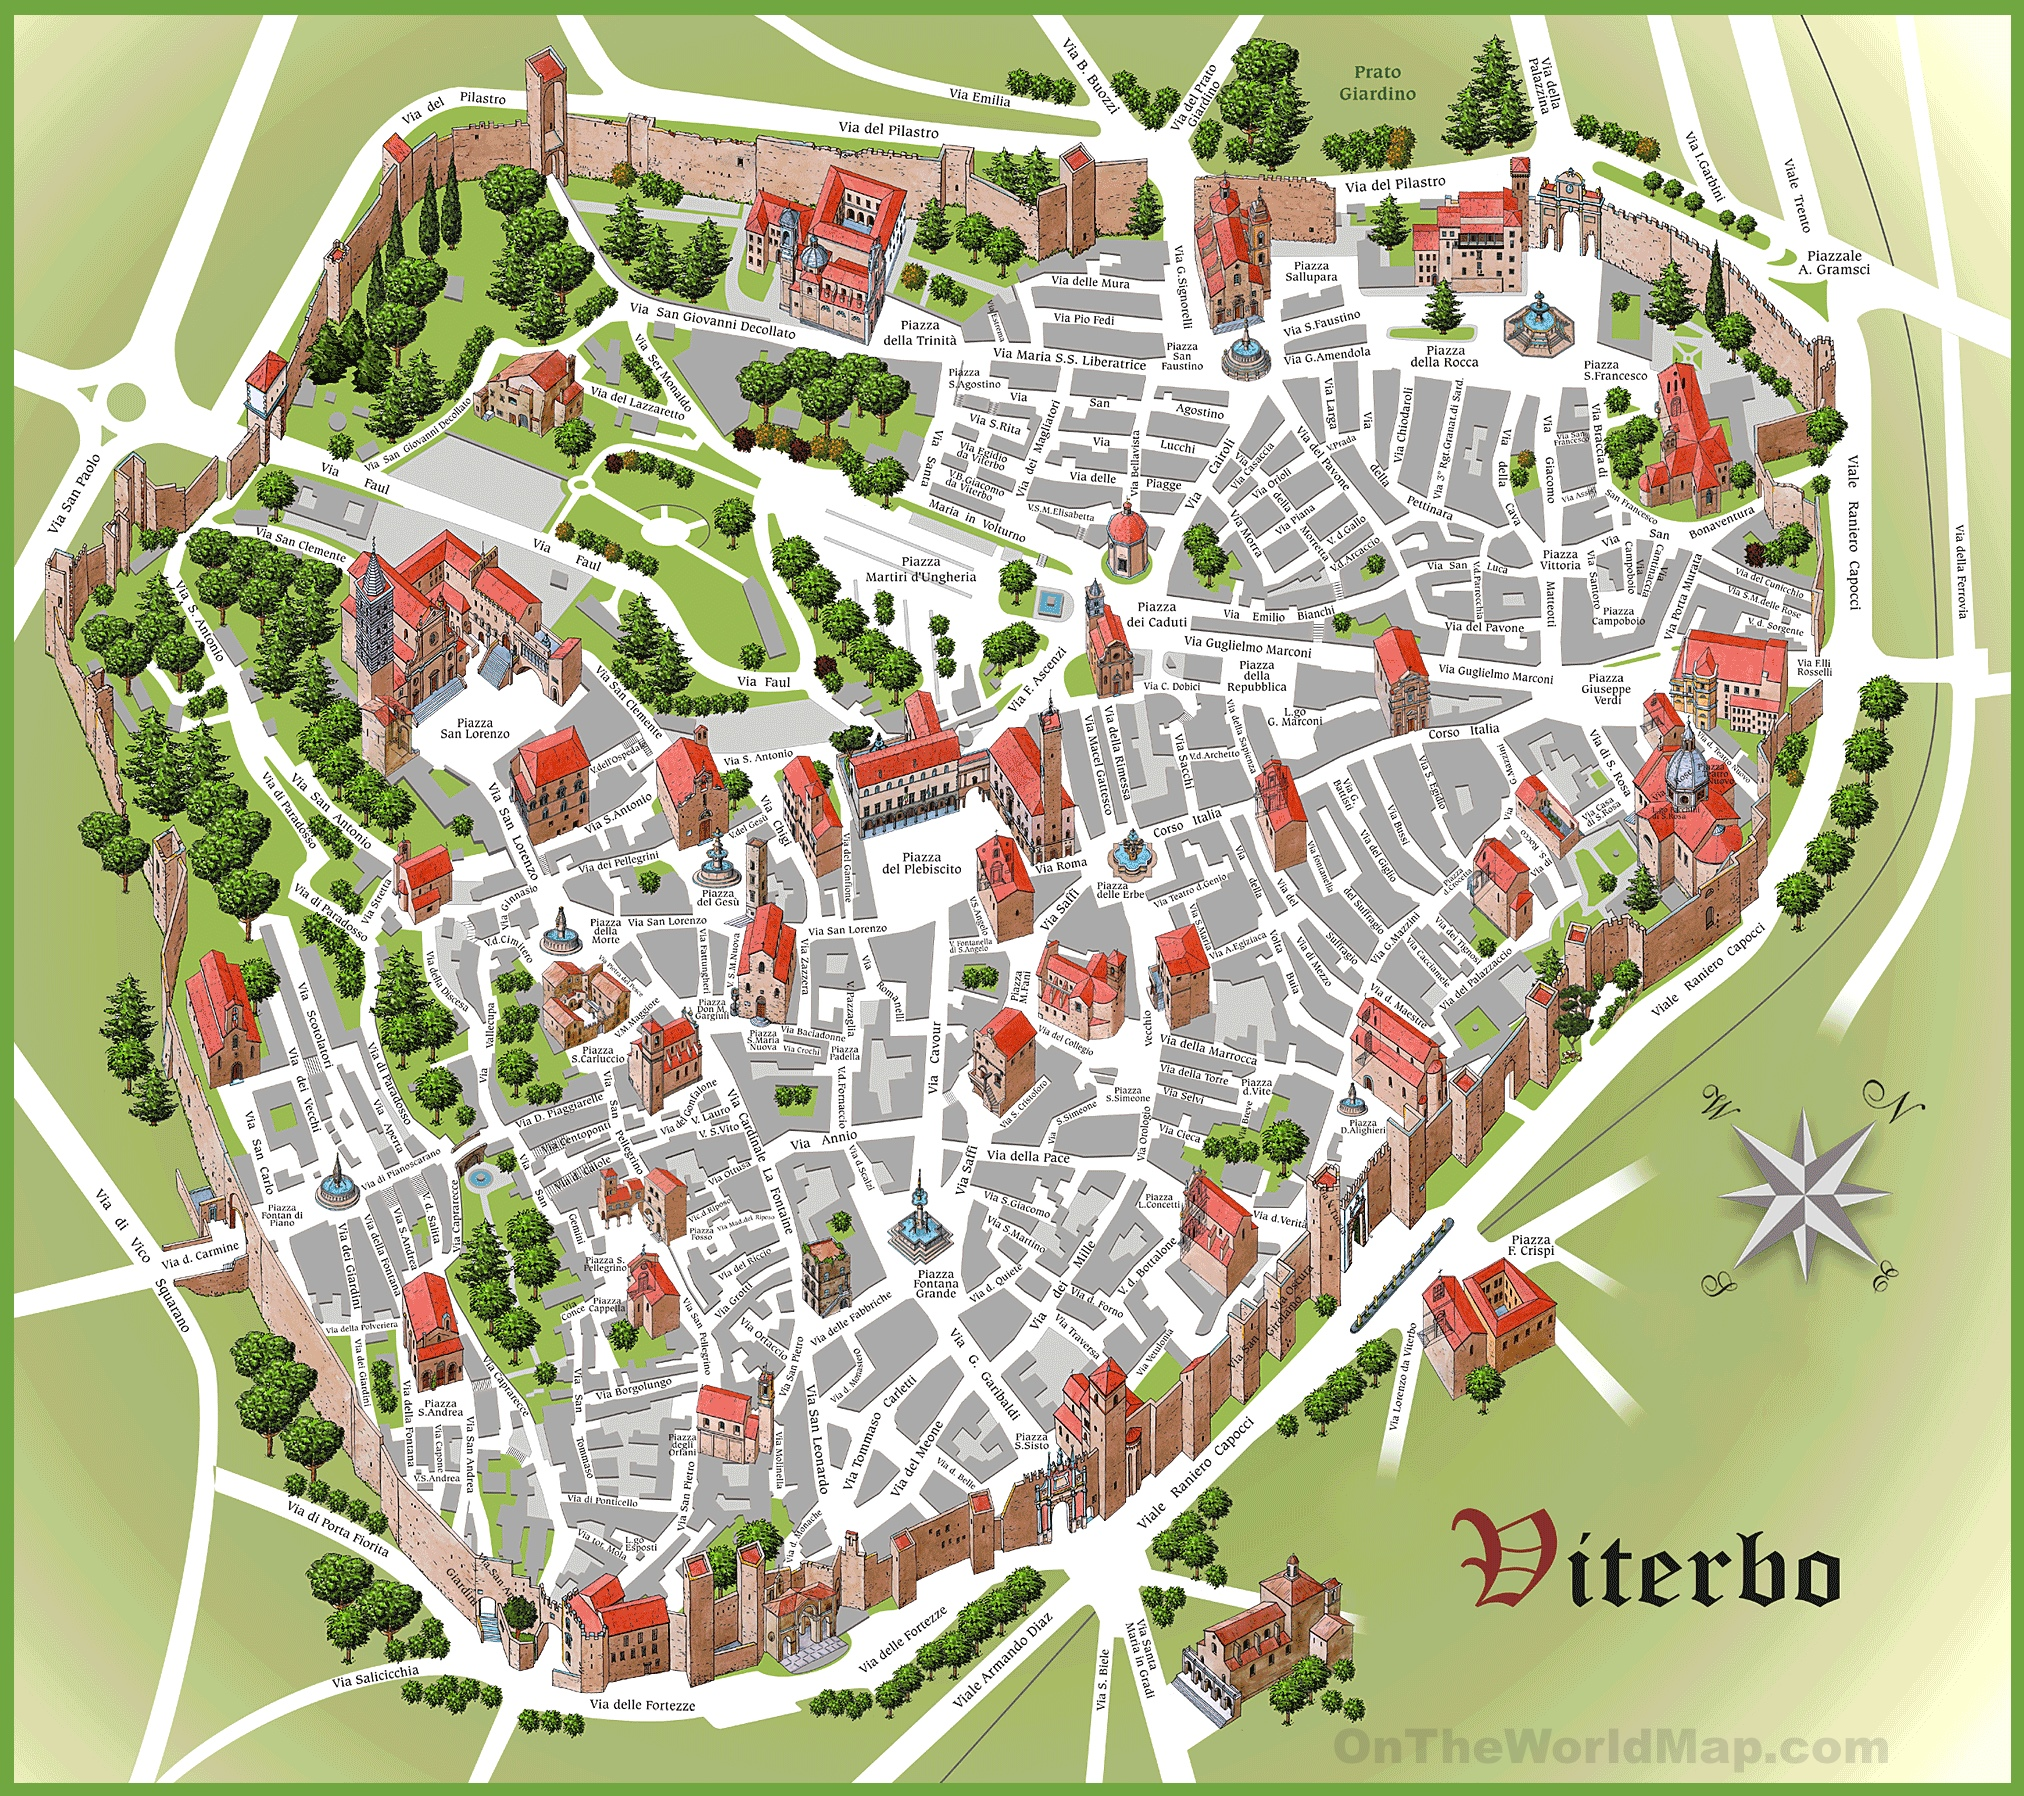 Viterbo tourist map